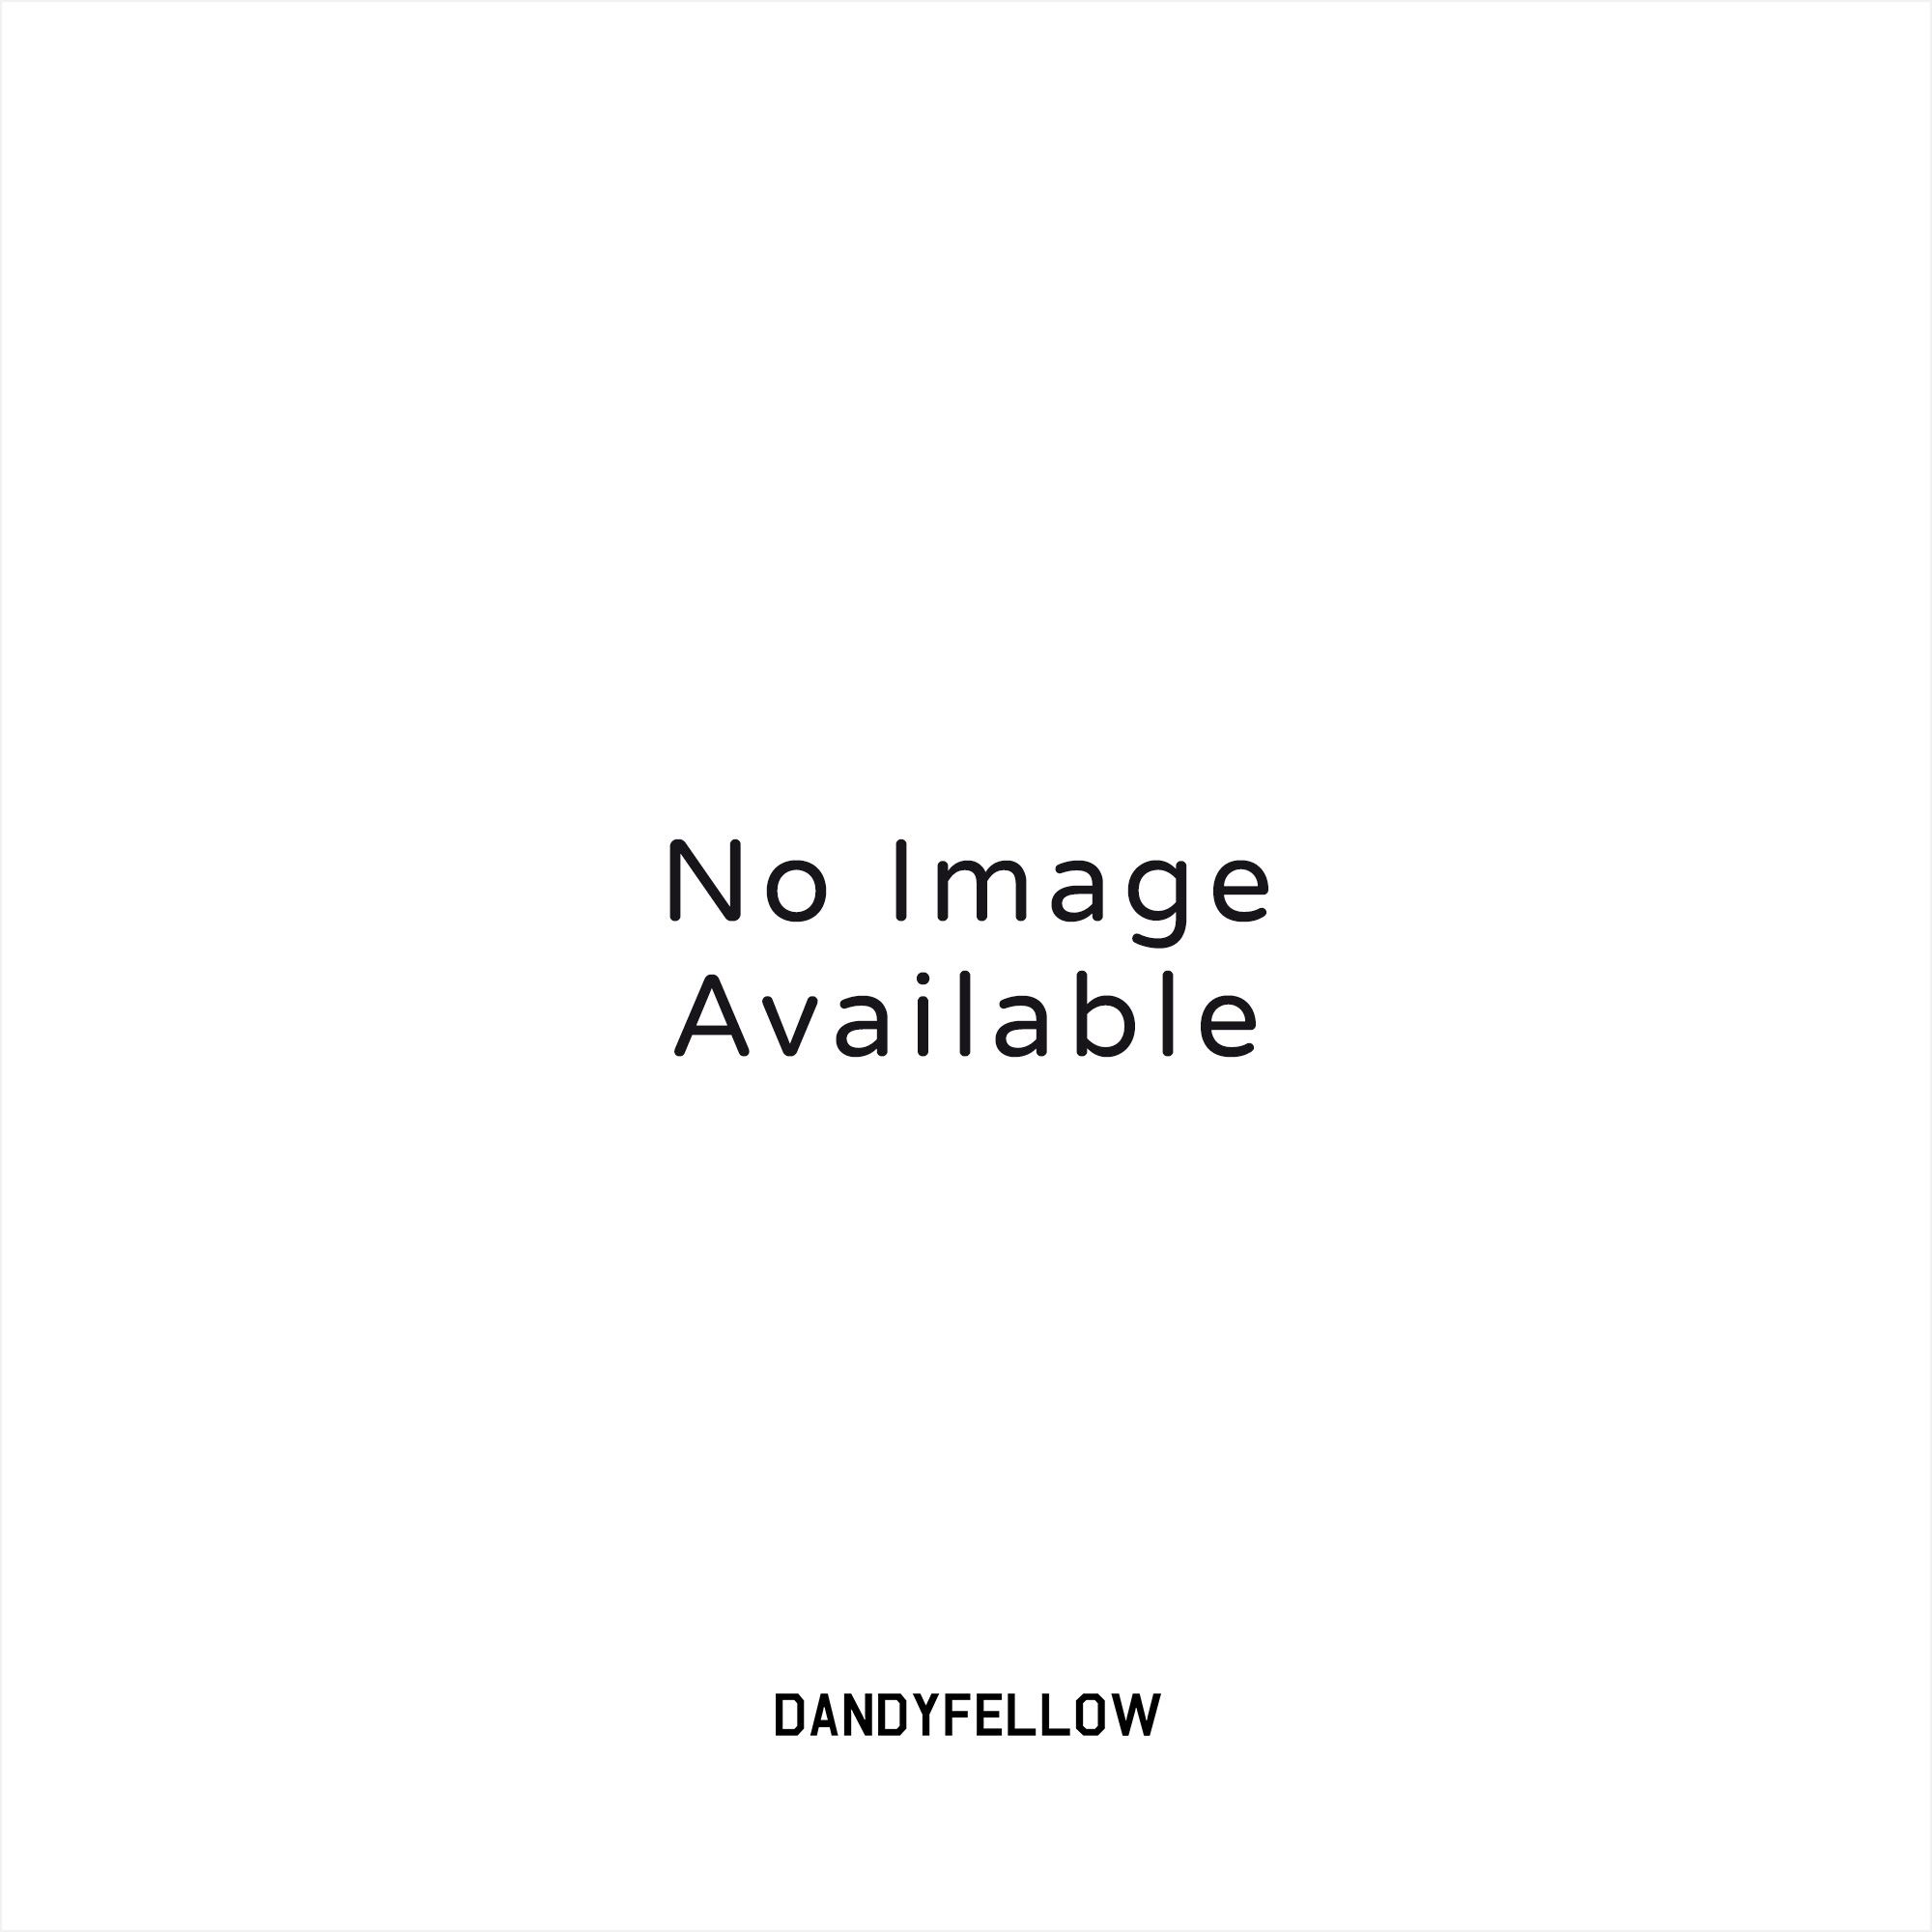 Burlington Neon King Argyle Light Grey Socks 21020 3820